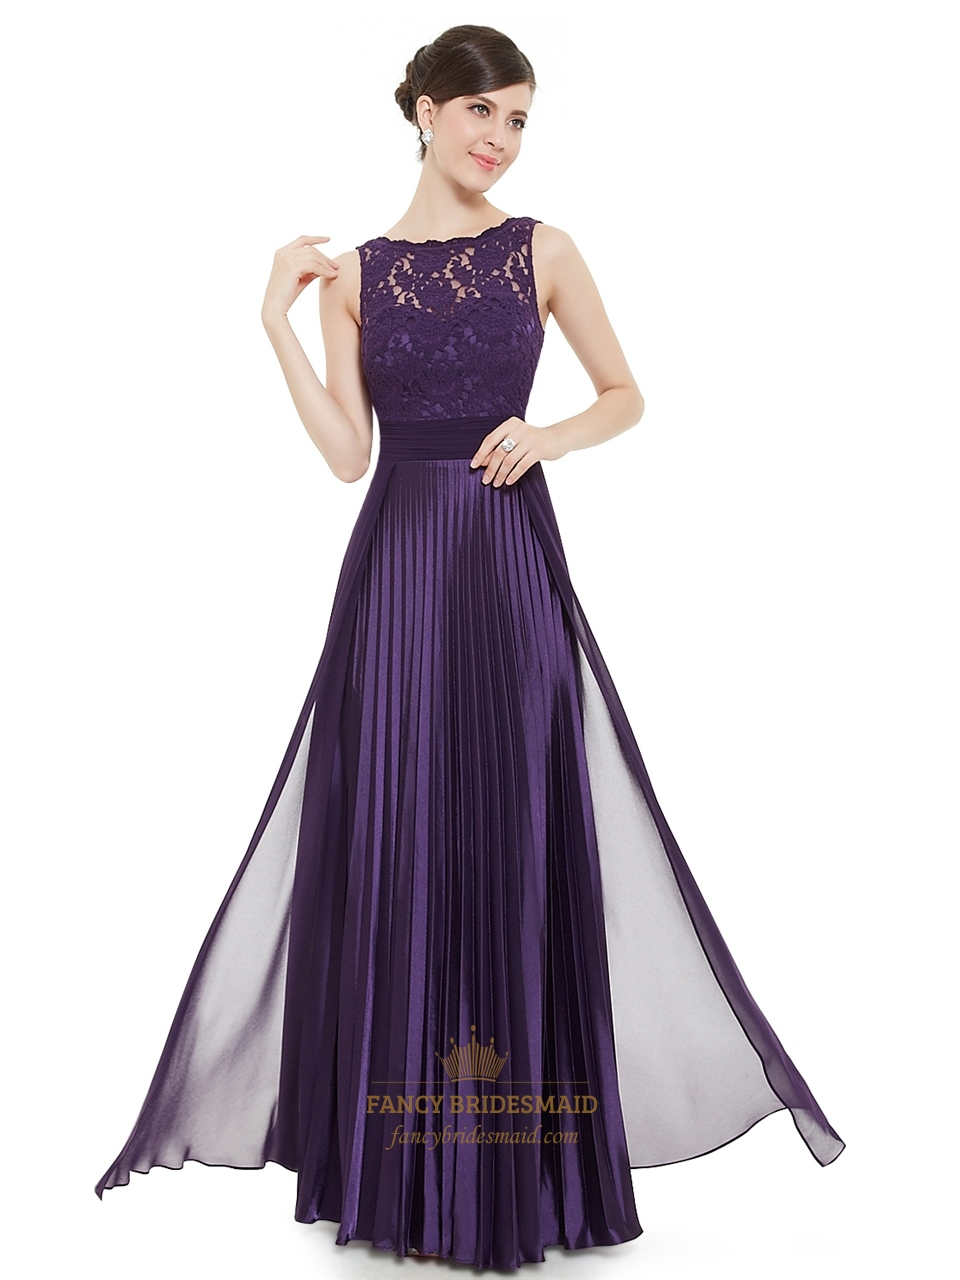 57e52e43d22d Eggplant Purple Chiffon Sleeveless Lace Bodice Bridesmaid Dress With Belt  SKU -F597